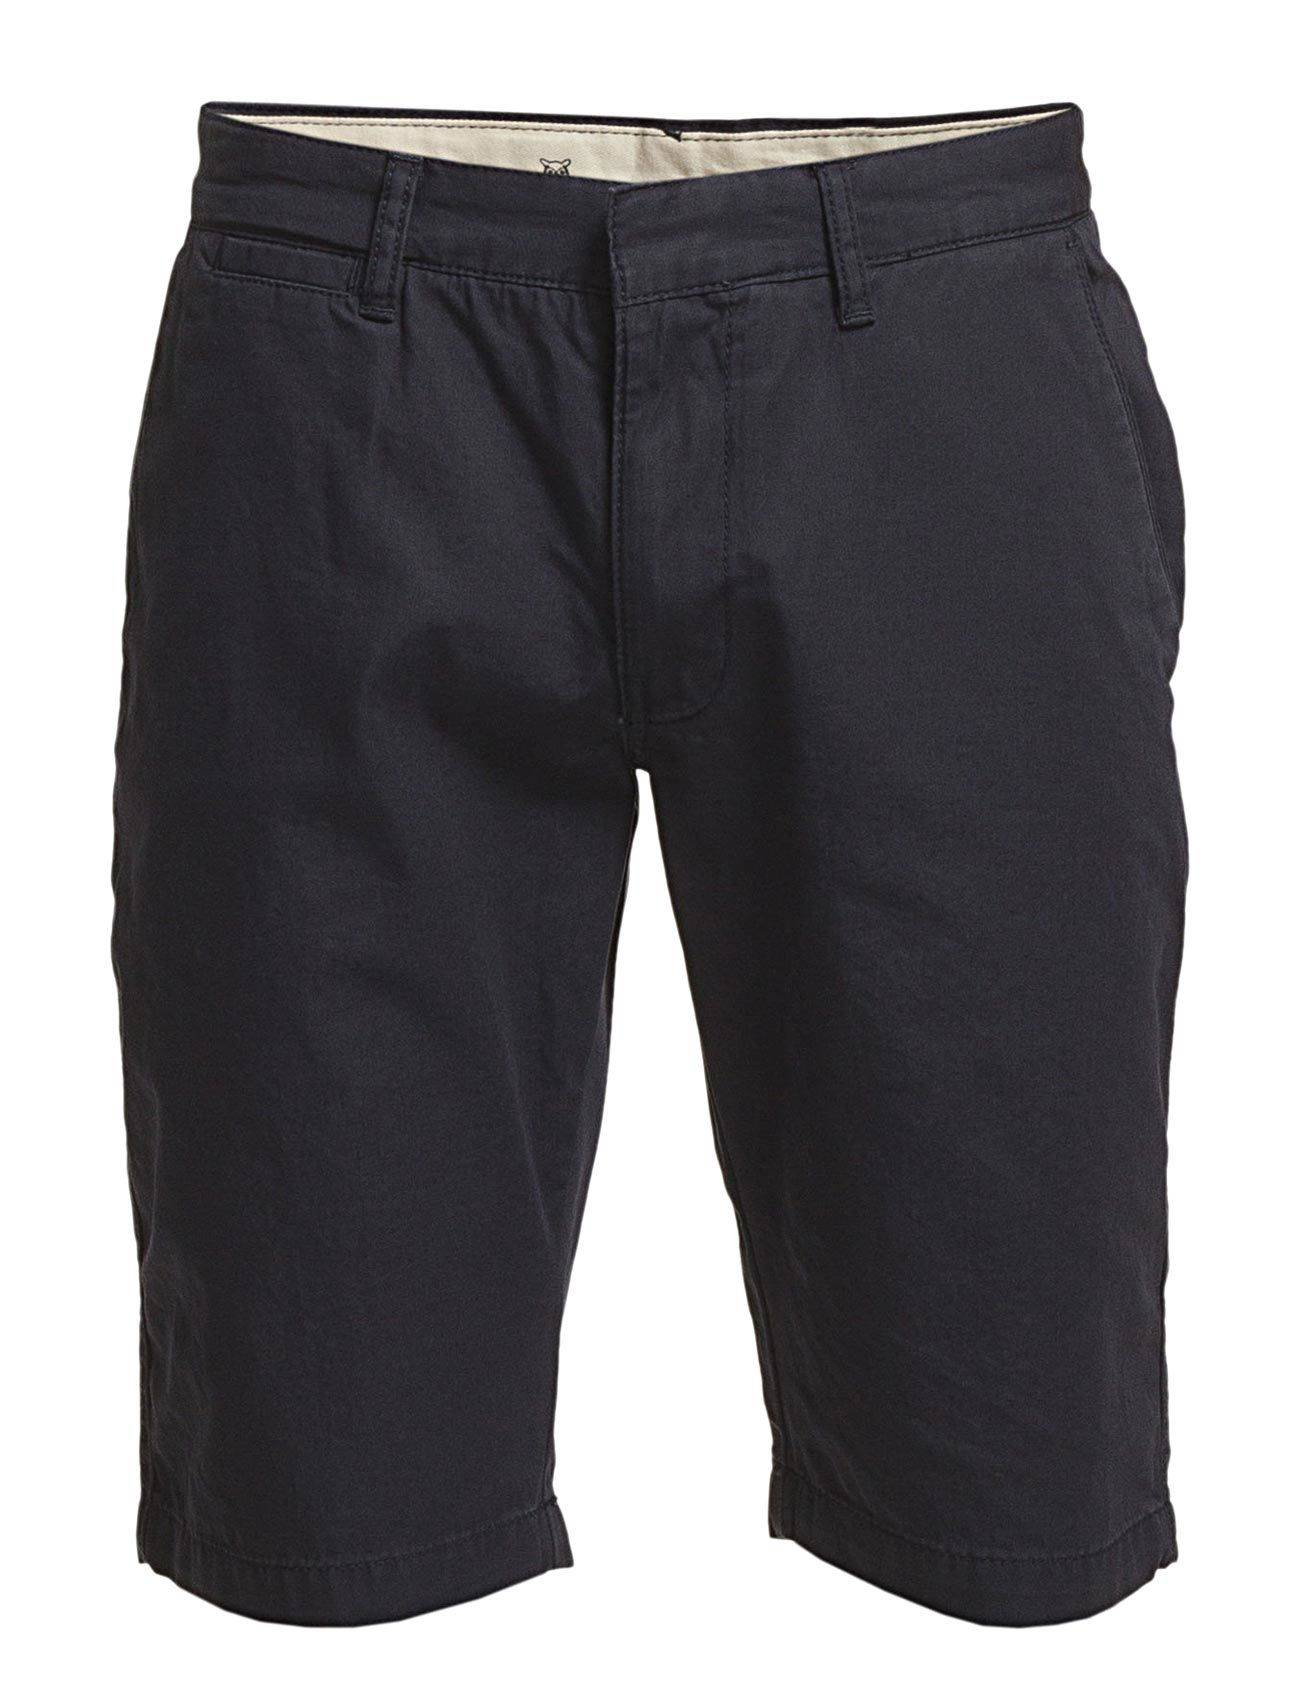 Knowledge Cotton Apparel Twisted Twill Shorts